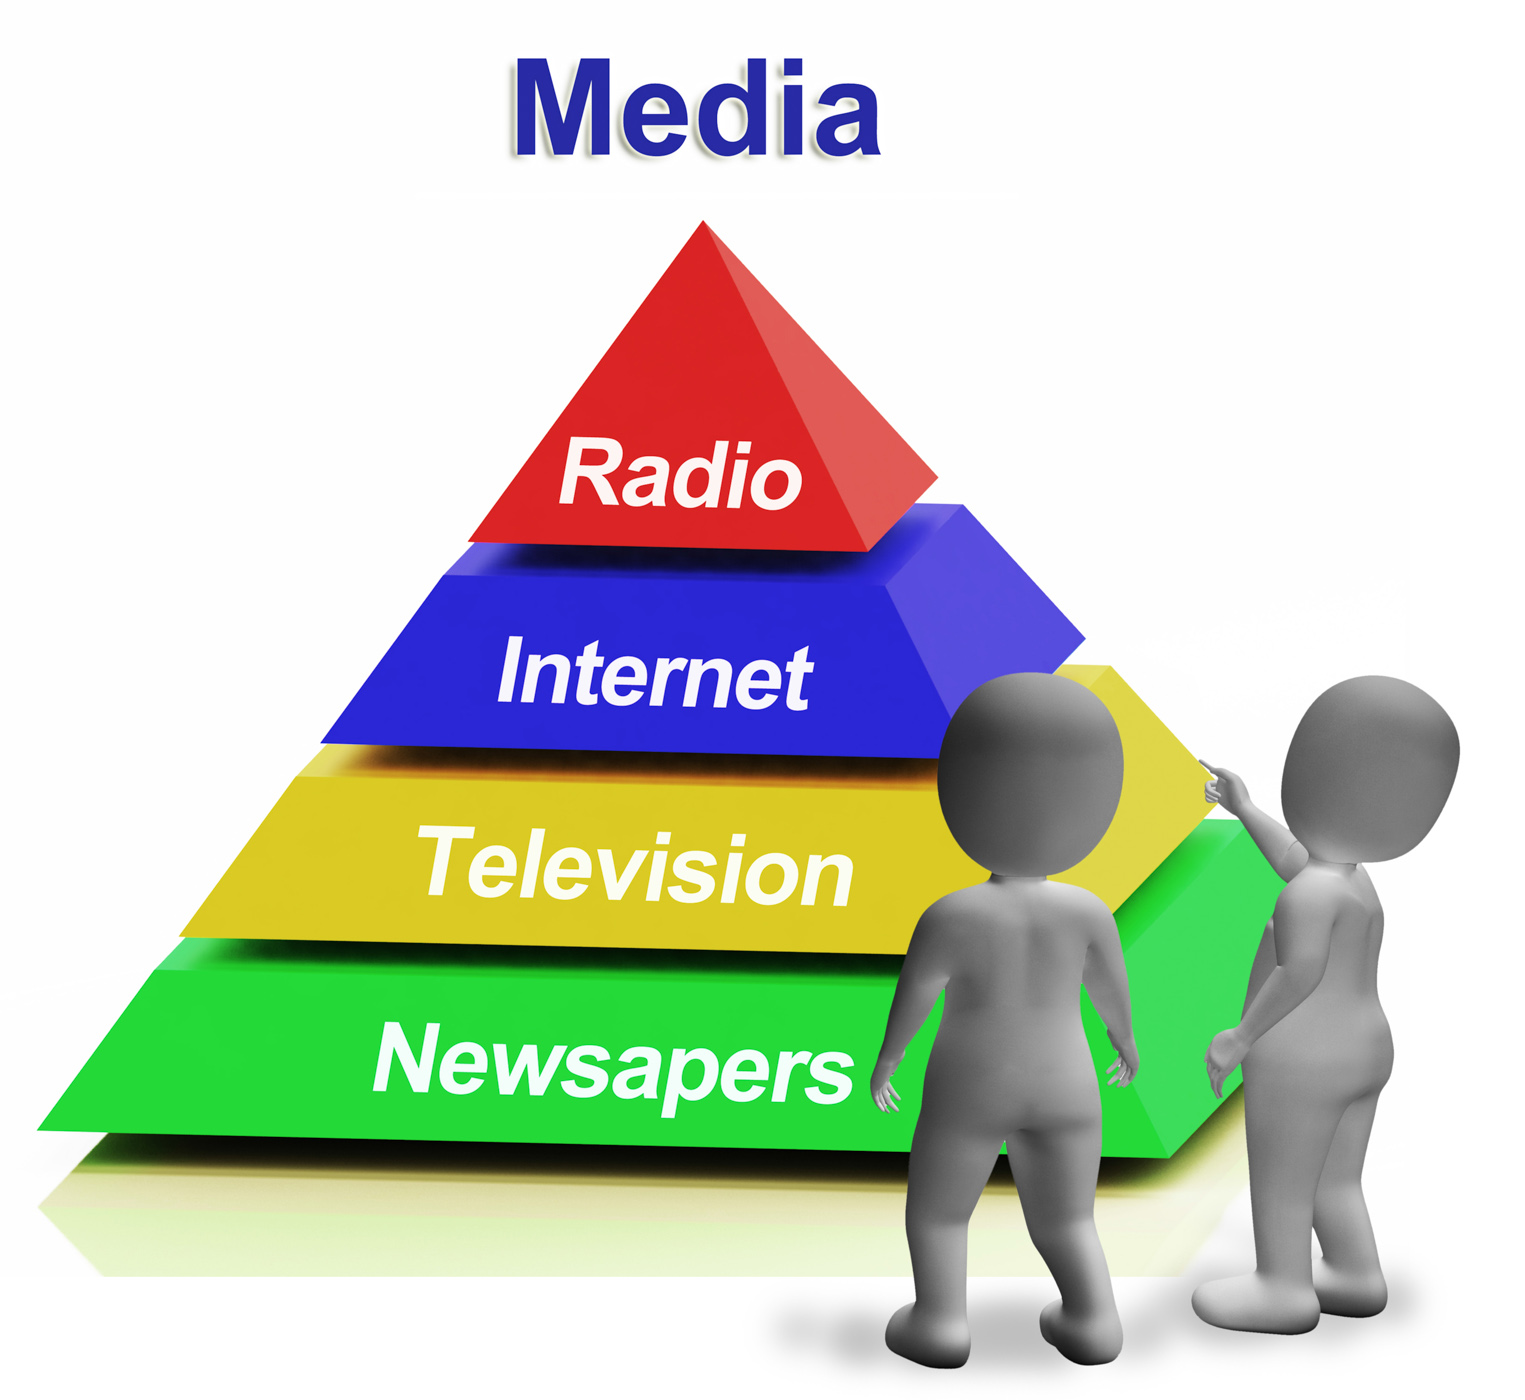 Media Pyramid Having Internet Television Newspapers And Radio, Marketing, TV, Television, Radio, HQ Photo